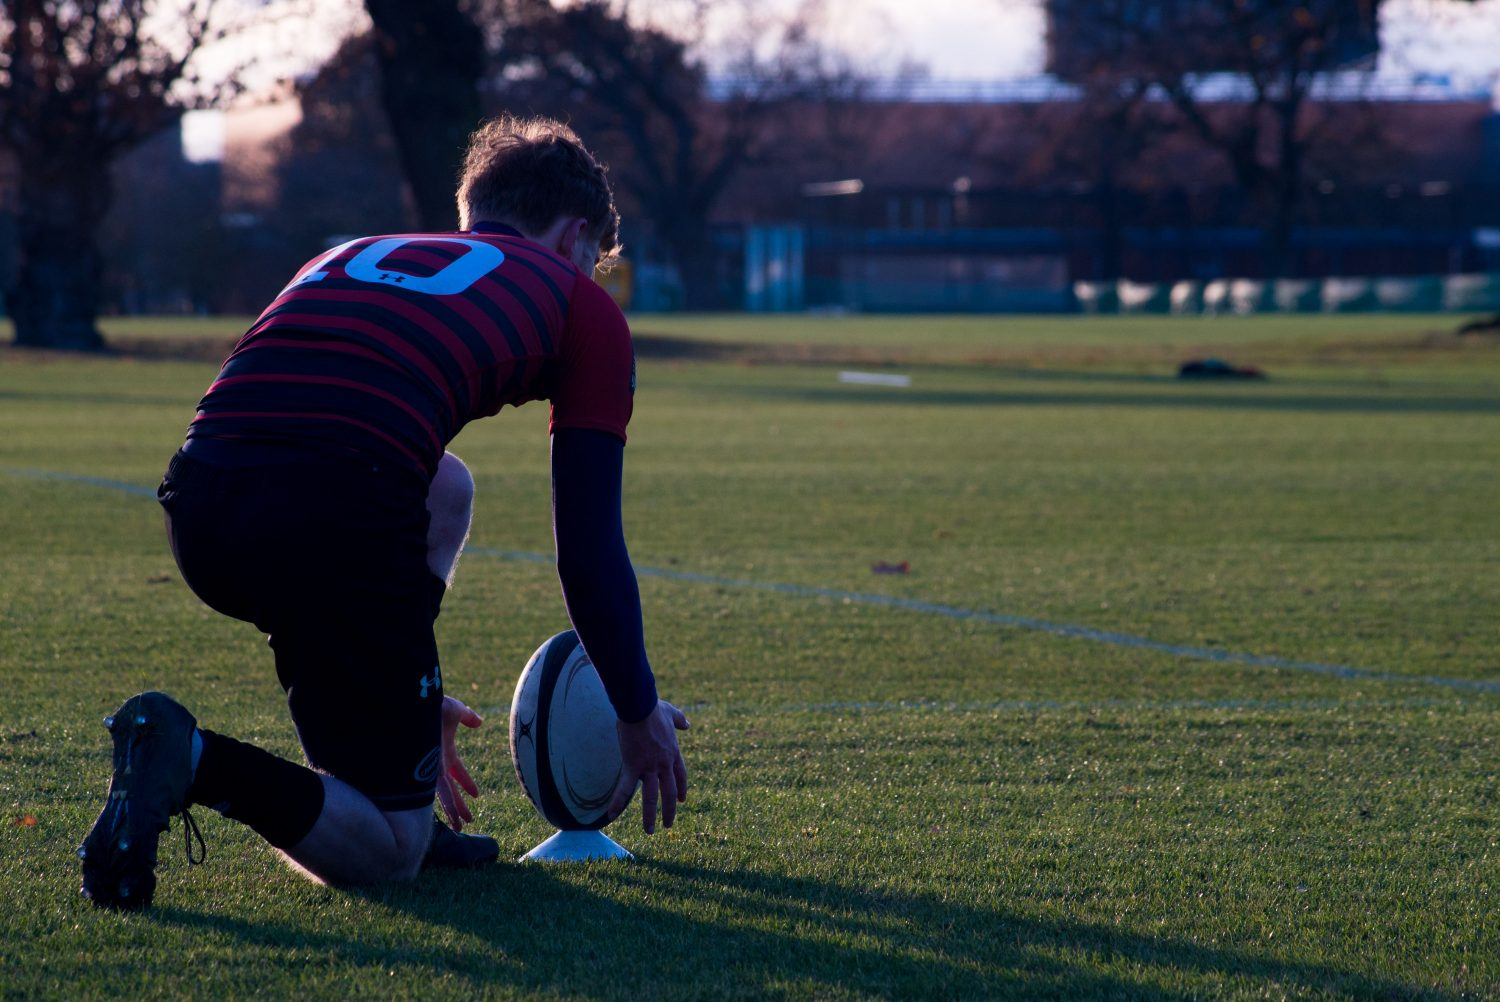 A rugby player kneels on a green pitch, reaching for a rugby ball.